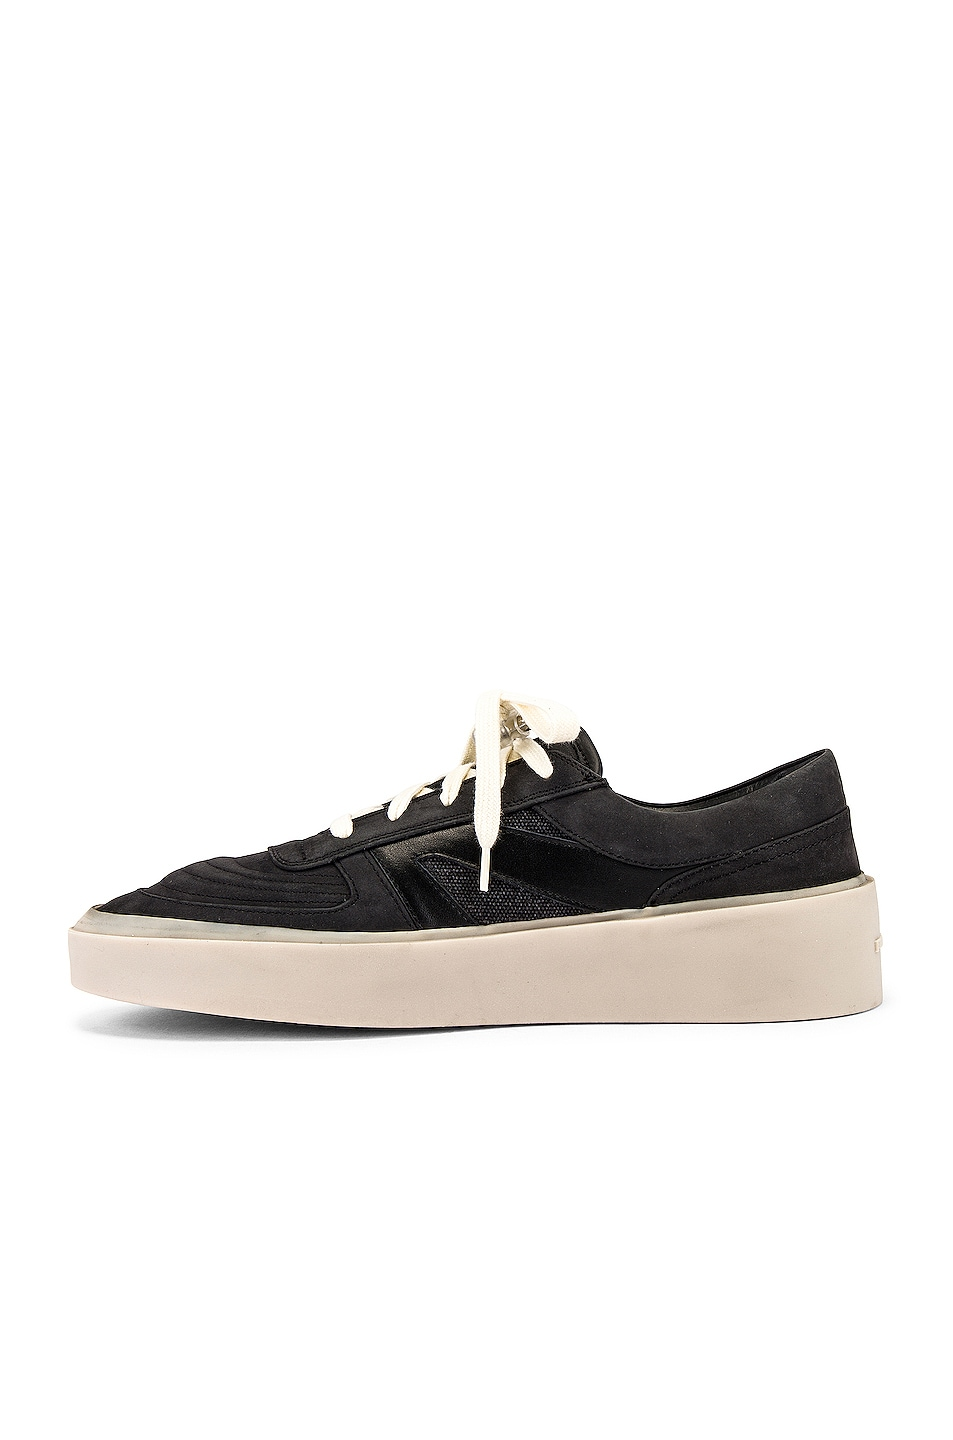 Image 5 of Fear of God Strapless Skate Mid in Black & Grey Gum Sole